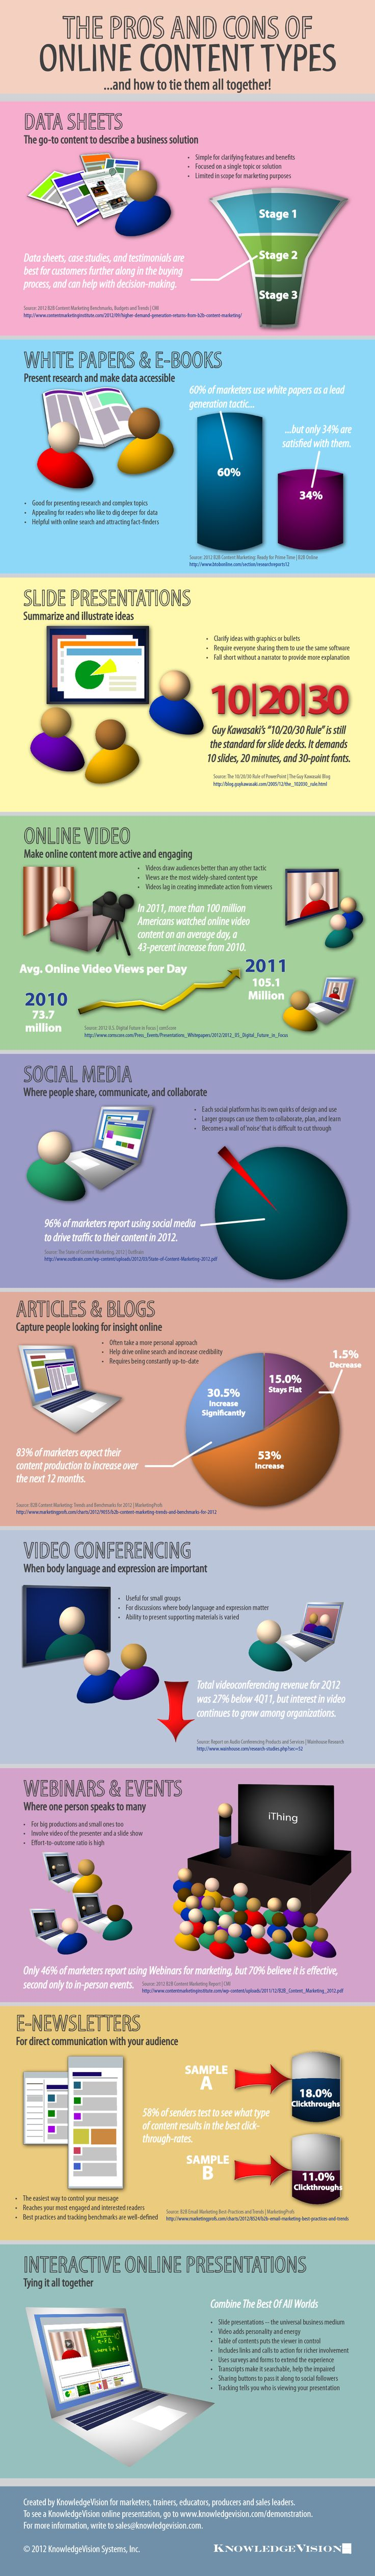 The Pros And Cons Of Online Content Marketing Types [Infographic]